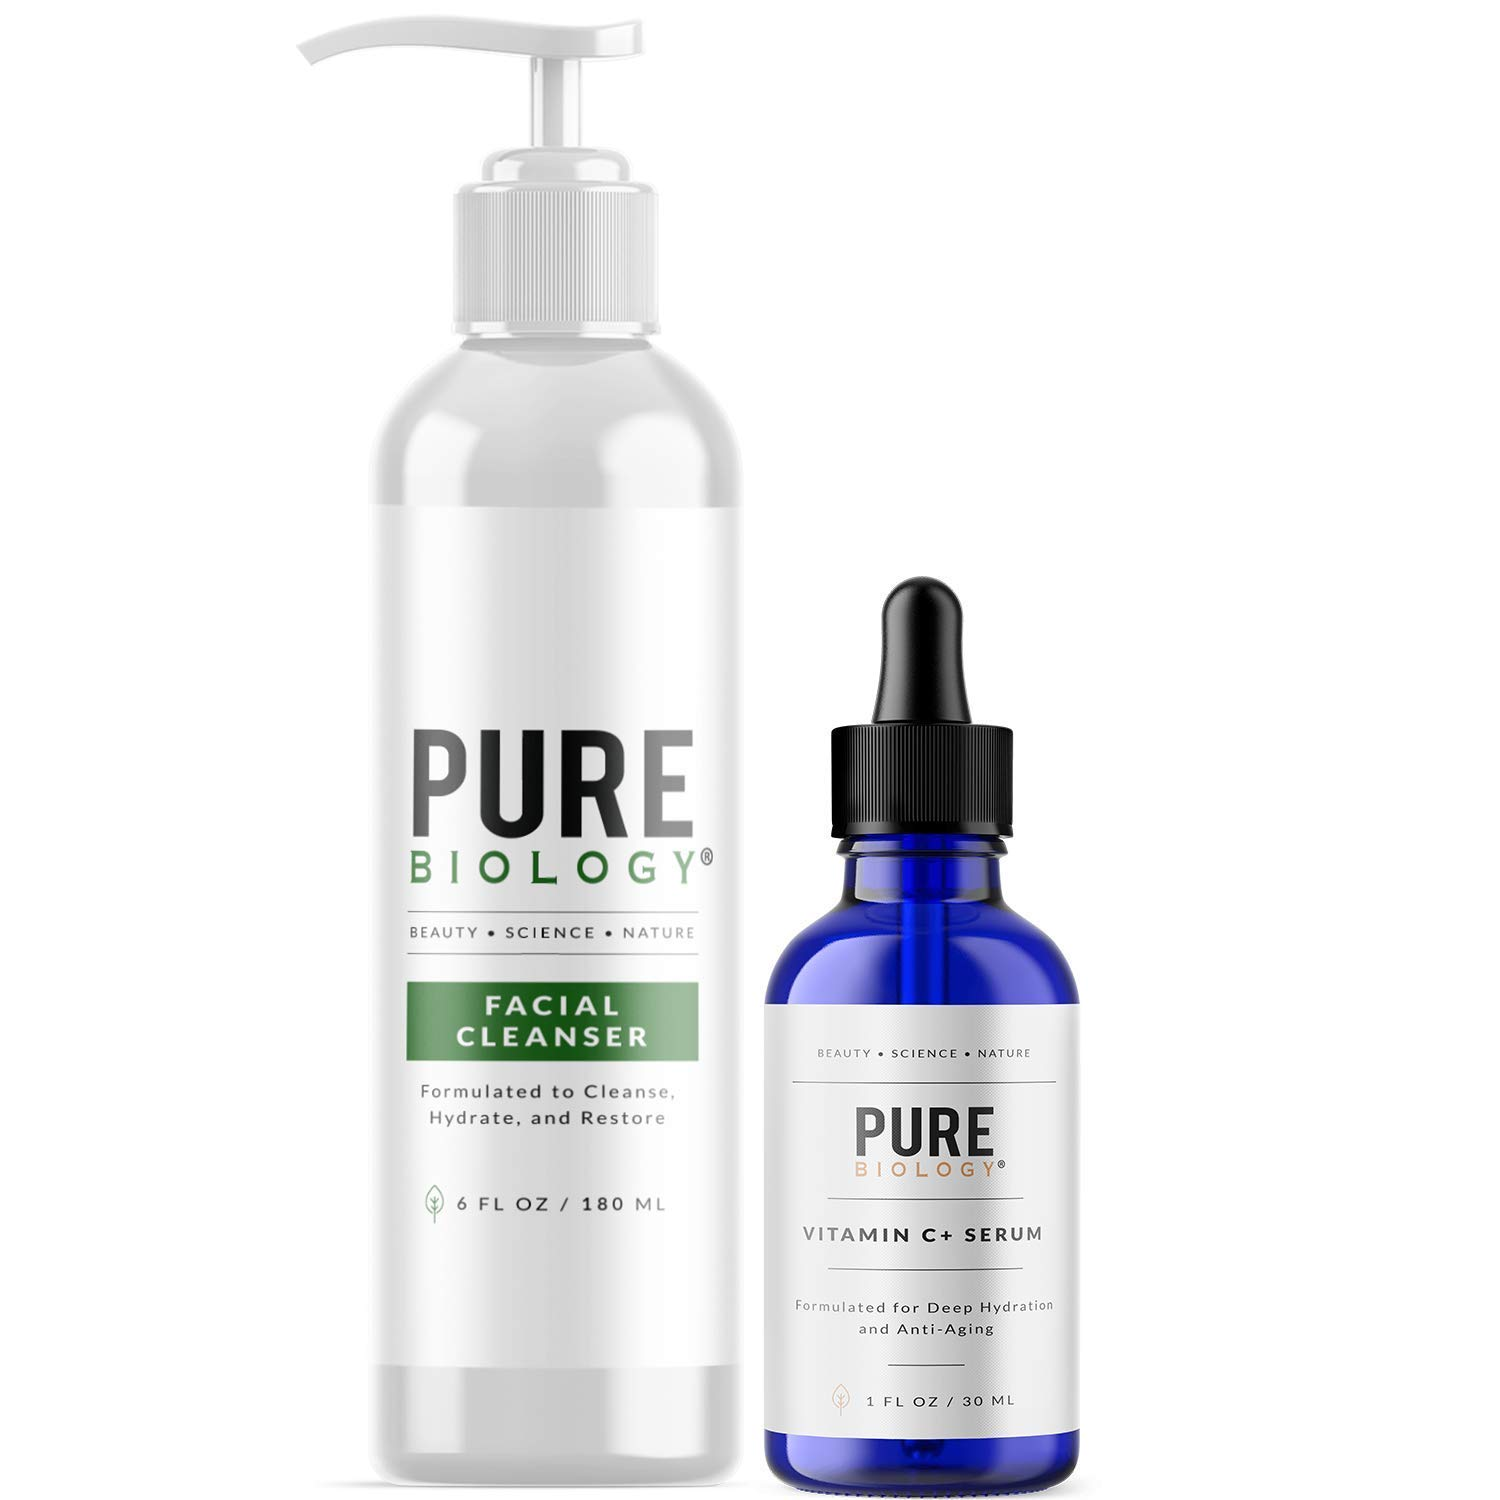 Pure Biology Premium Facial Cleanser & Vitamin C Serum (1 oz) with Hyaluronic Acid